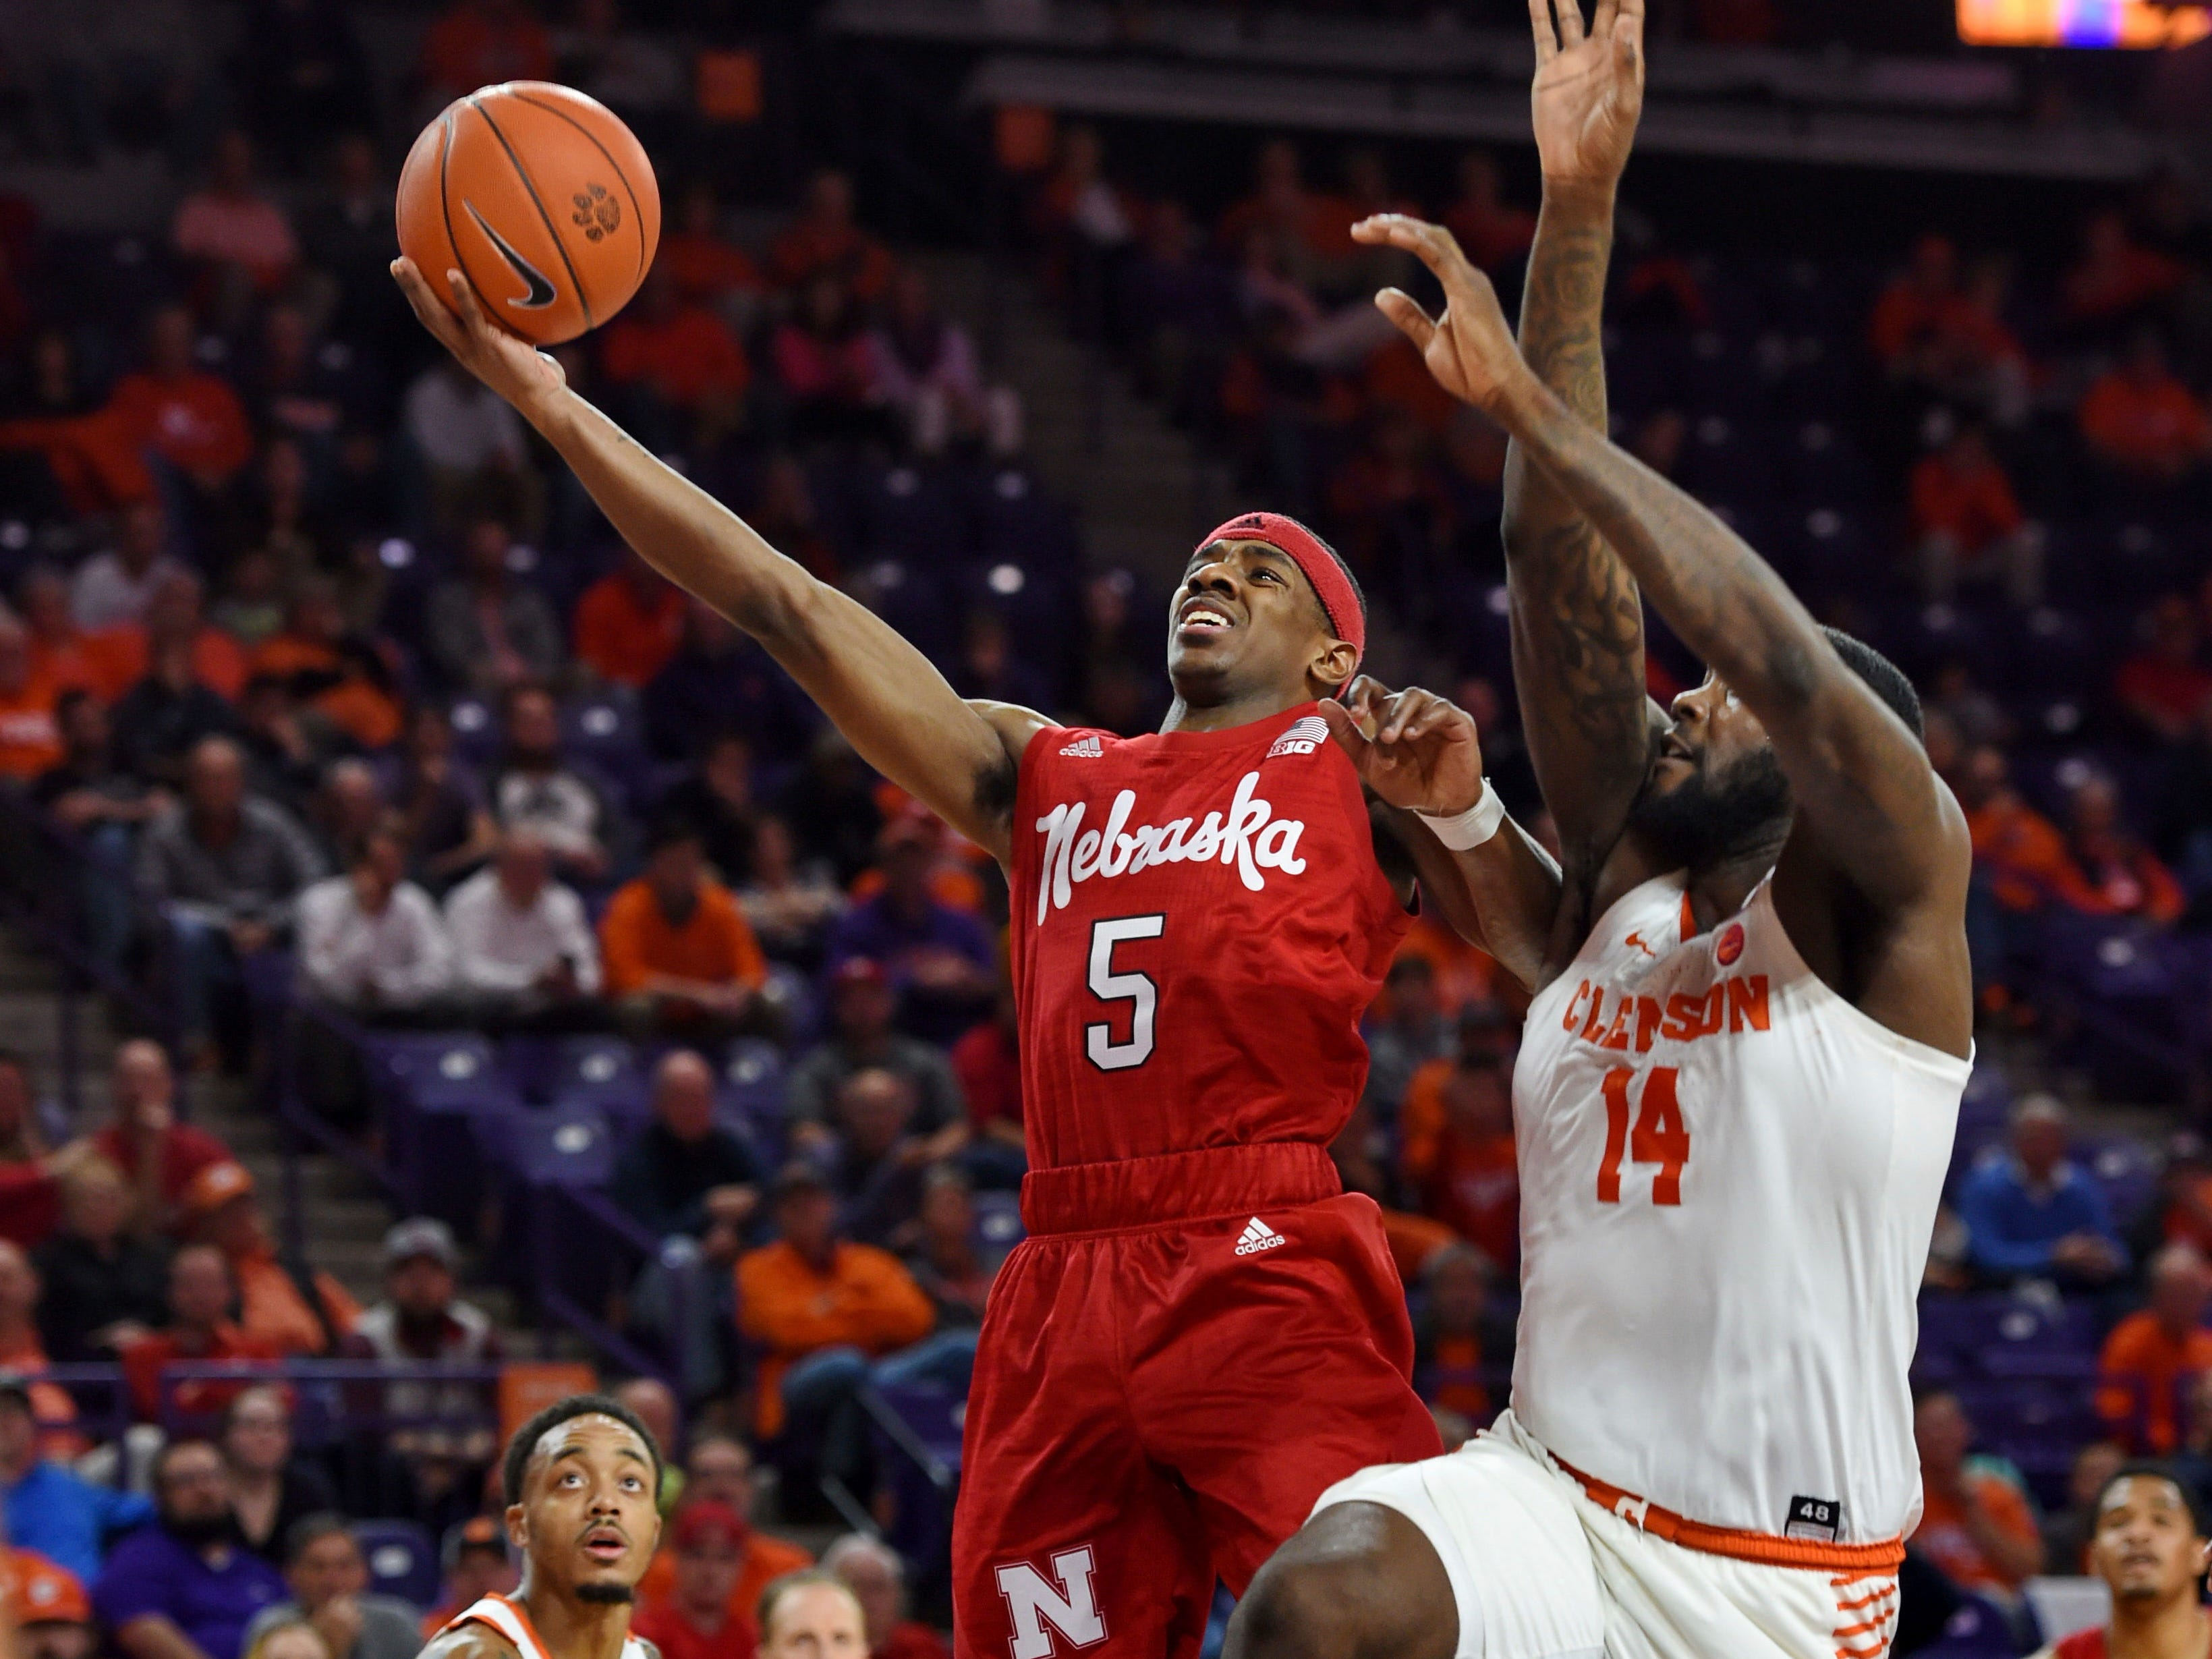 Nebraska's Glynn Watson Jr. drives in for a score while defended by Clemson's Elijah Thomas during the second half of an NCAA college basketball game Monday, Nov. 26, 2018, in Clemson, S.C. (AP Photo/Richard Shiro)